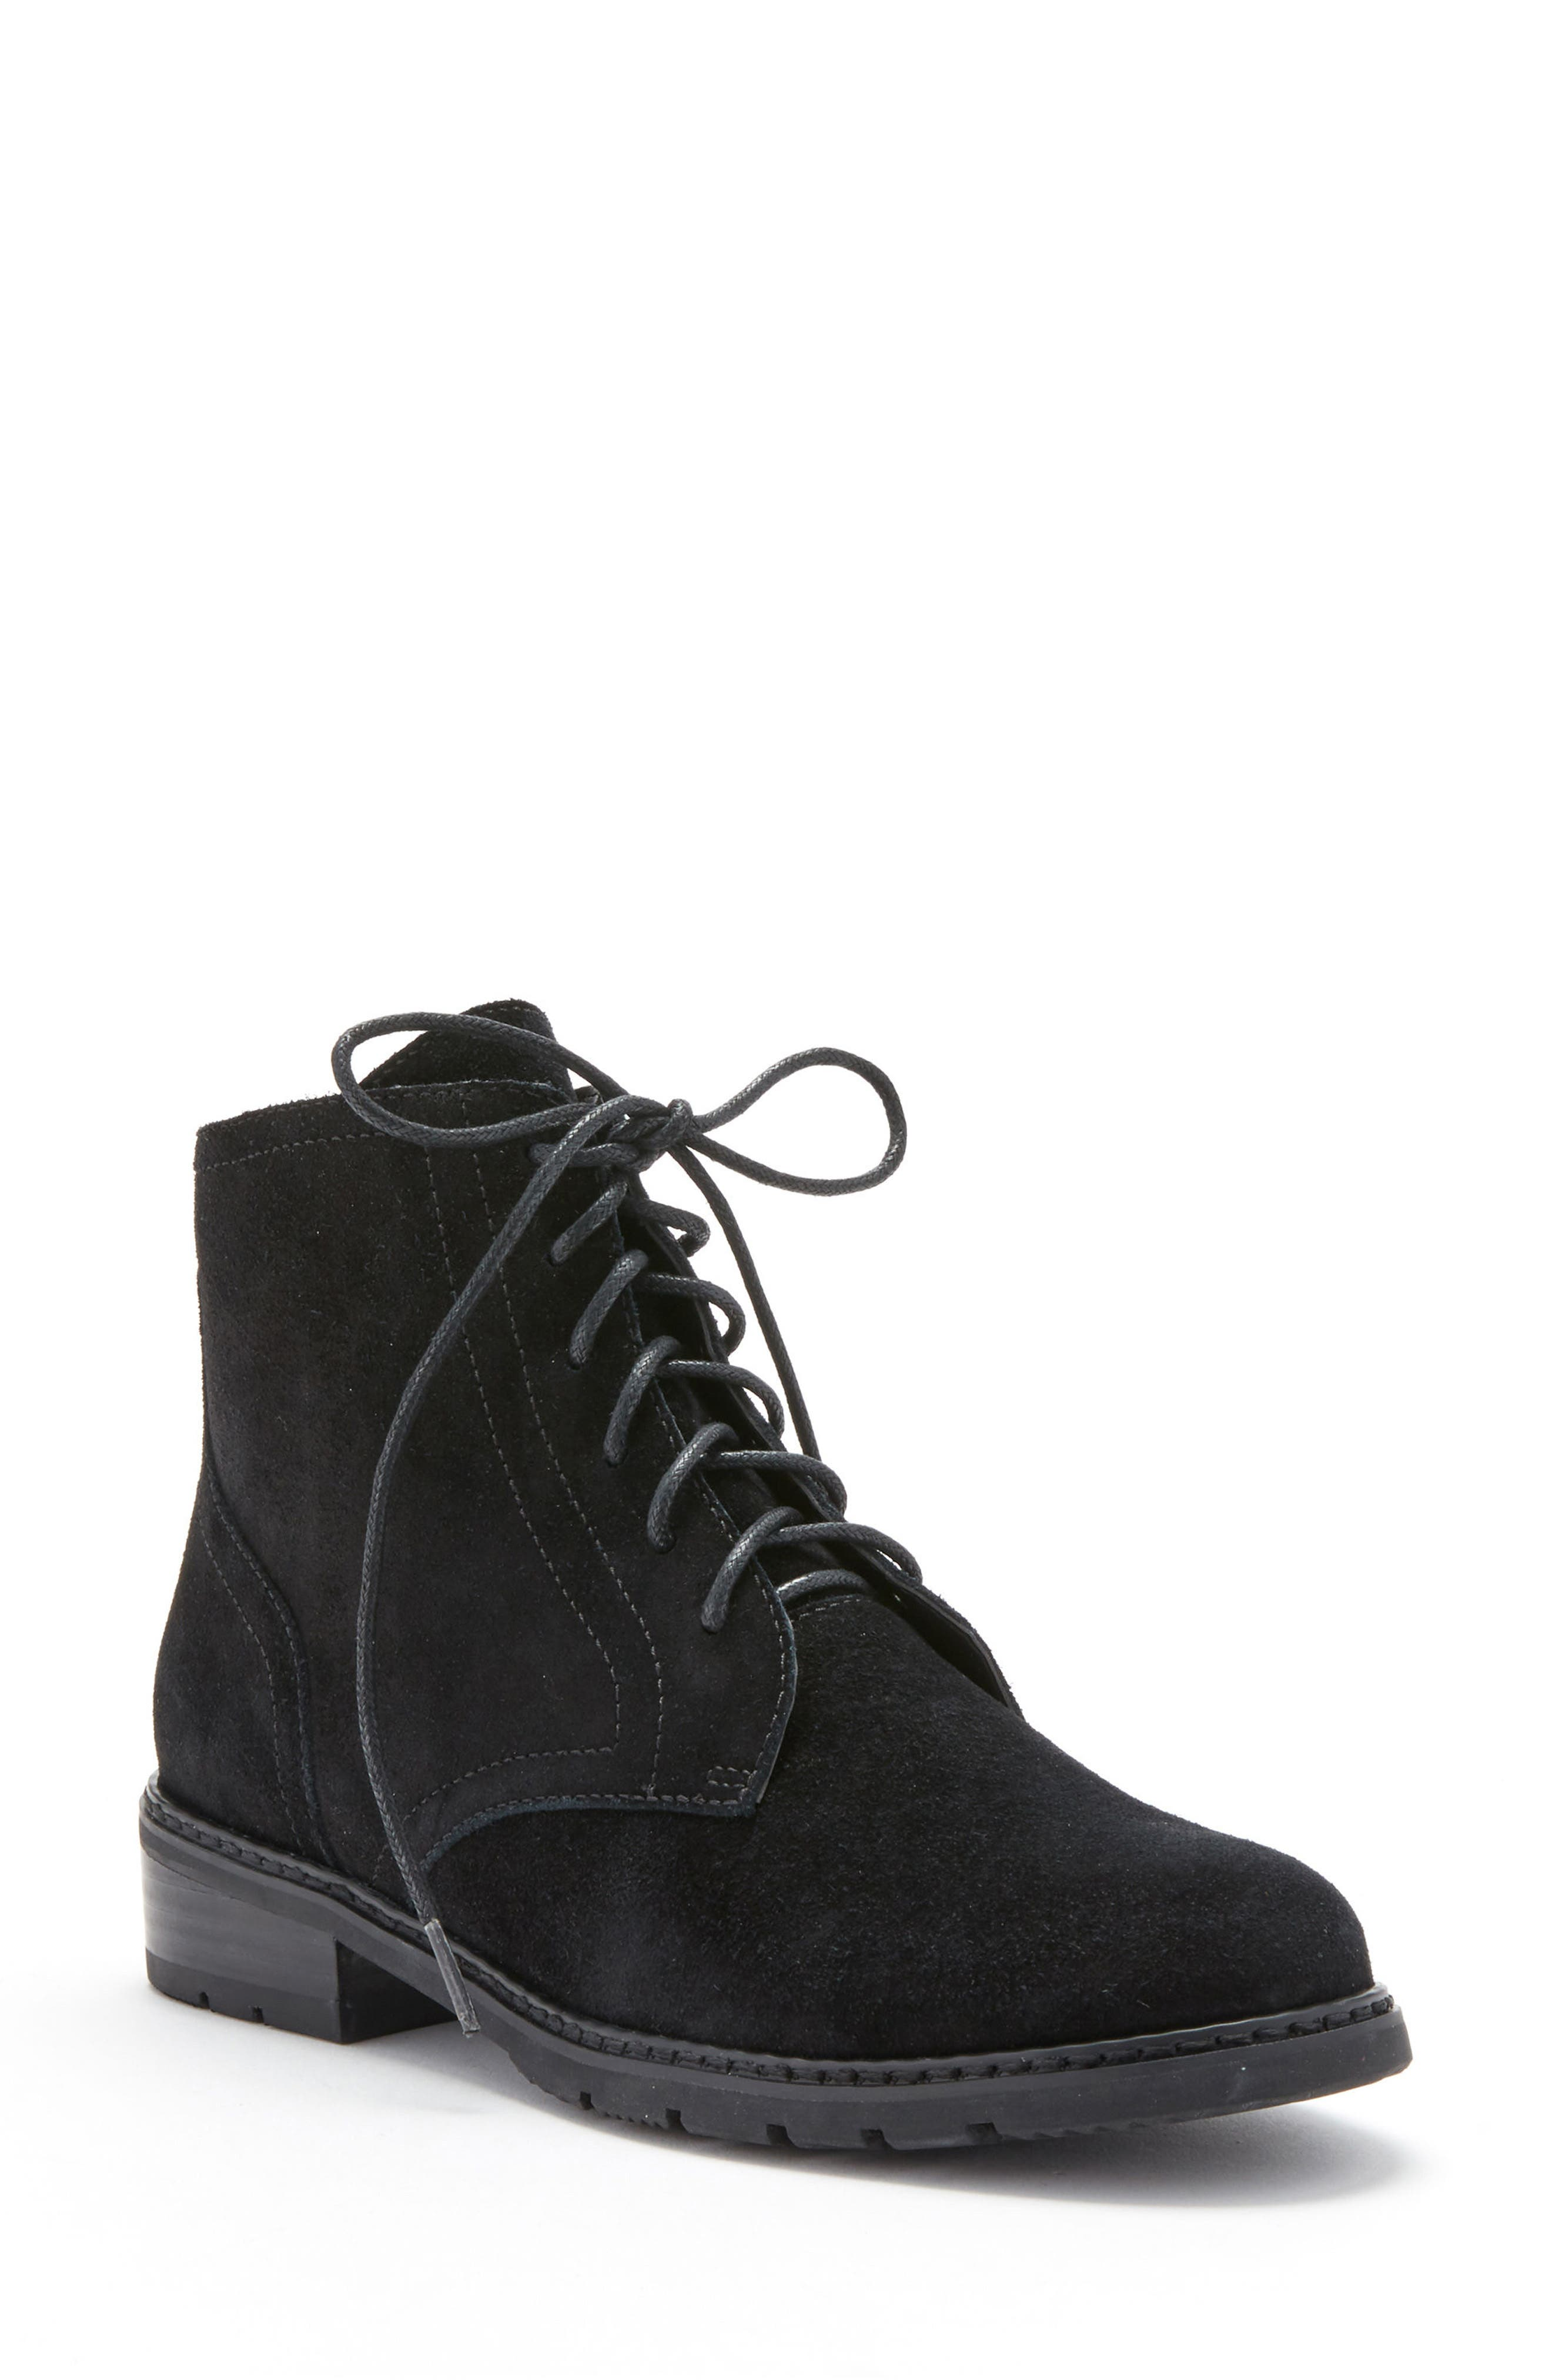 Vivi Waterproof Boot,                         Main,                         color, Black Suede